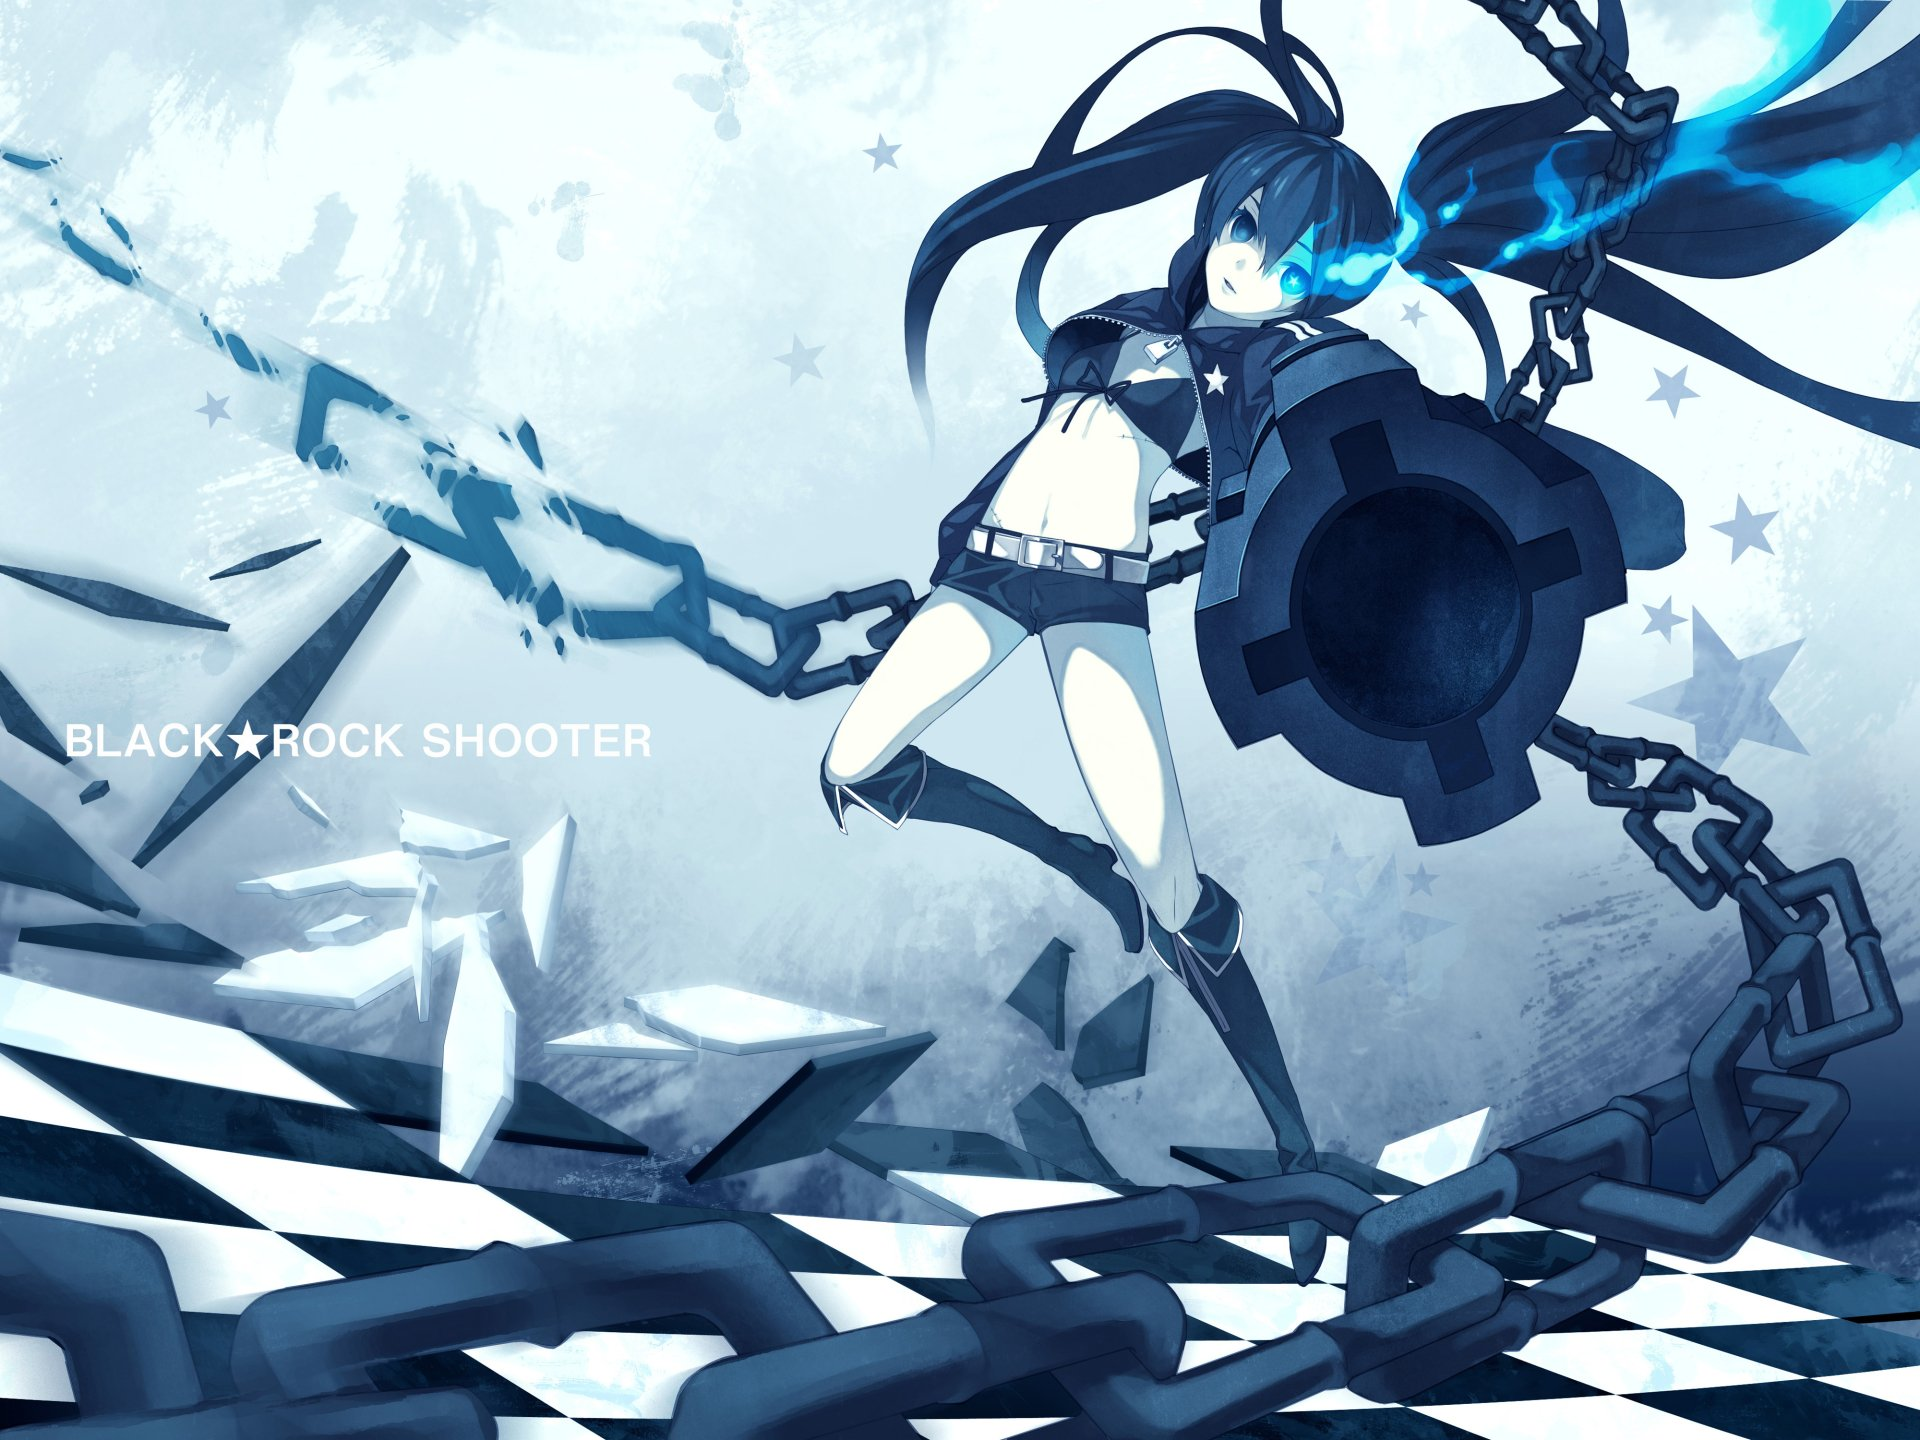 Black rock shooter 4k ultra hd fondo de pantalla and fondo for Fondo de pantalla 4k anime